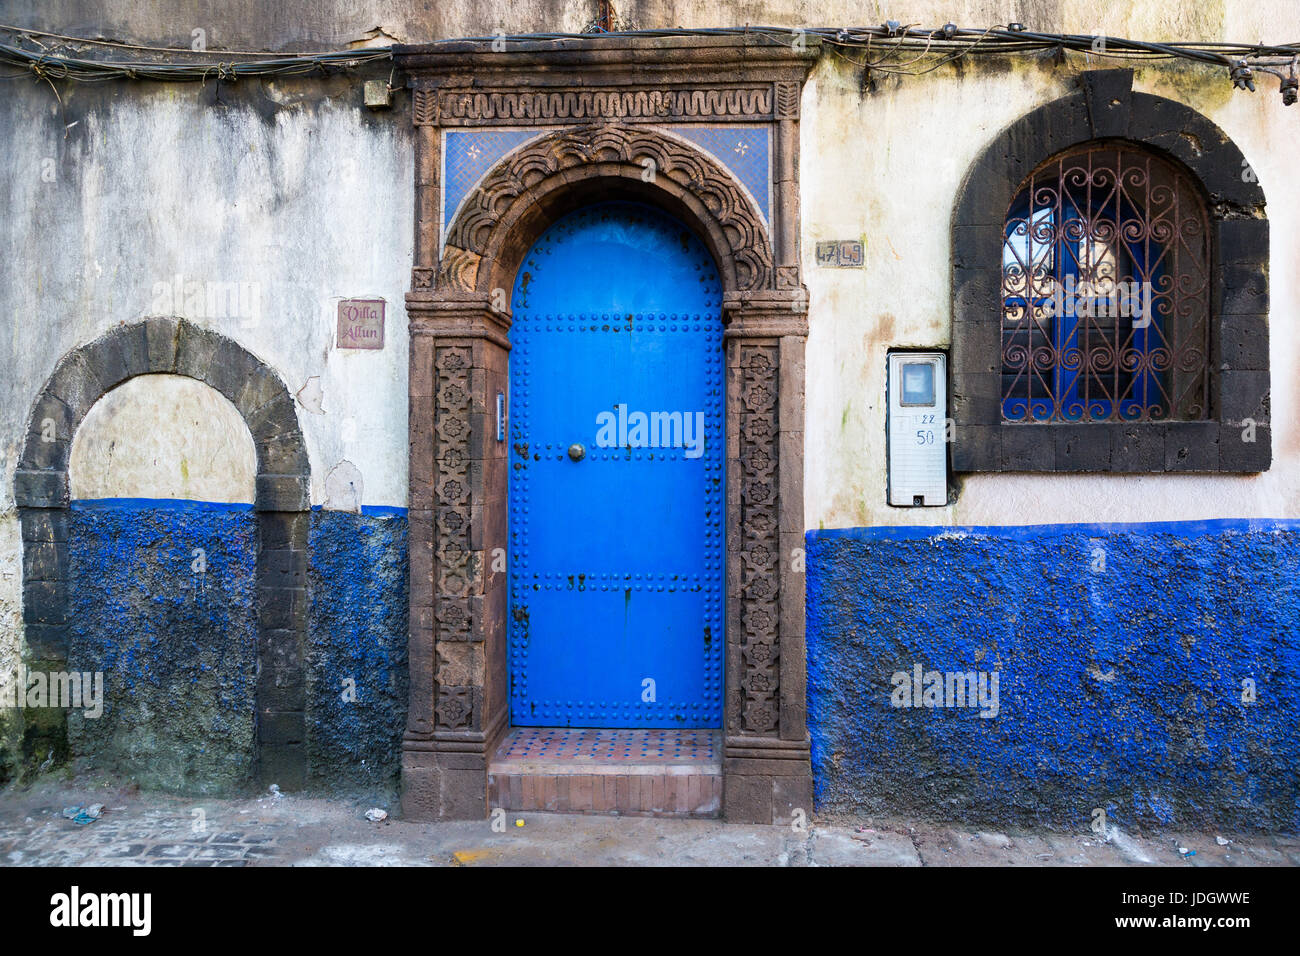 Windows and doorways of different shapes and colours on every house in the old town of Essaouira, Morocco Stock Photo